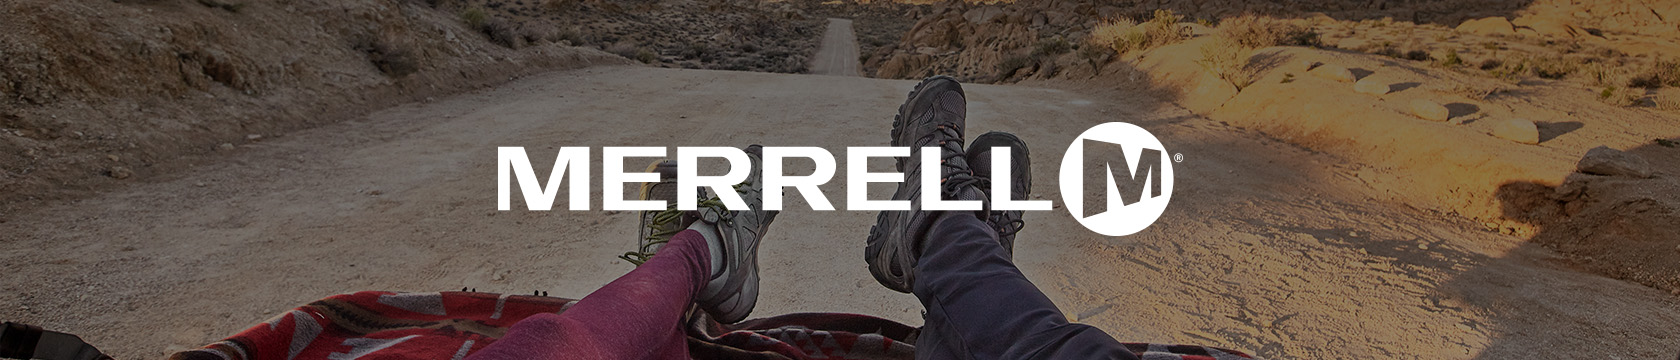 Female and male legs in Merrell footwear in the middle of a sandy road.